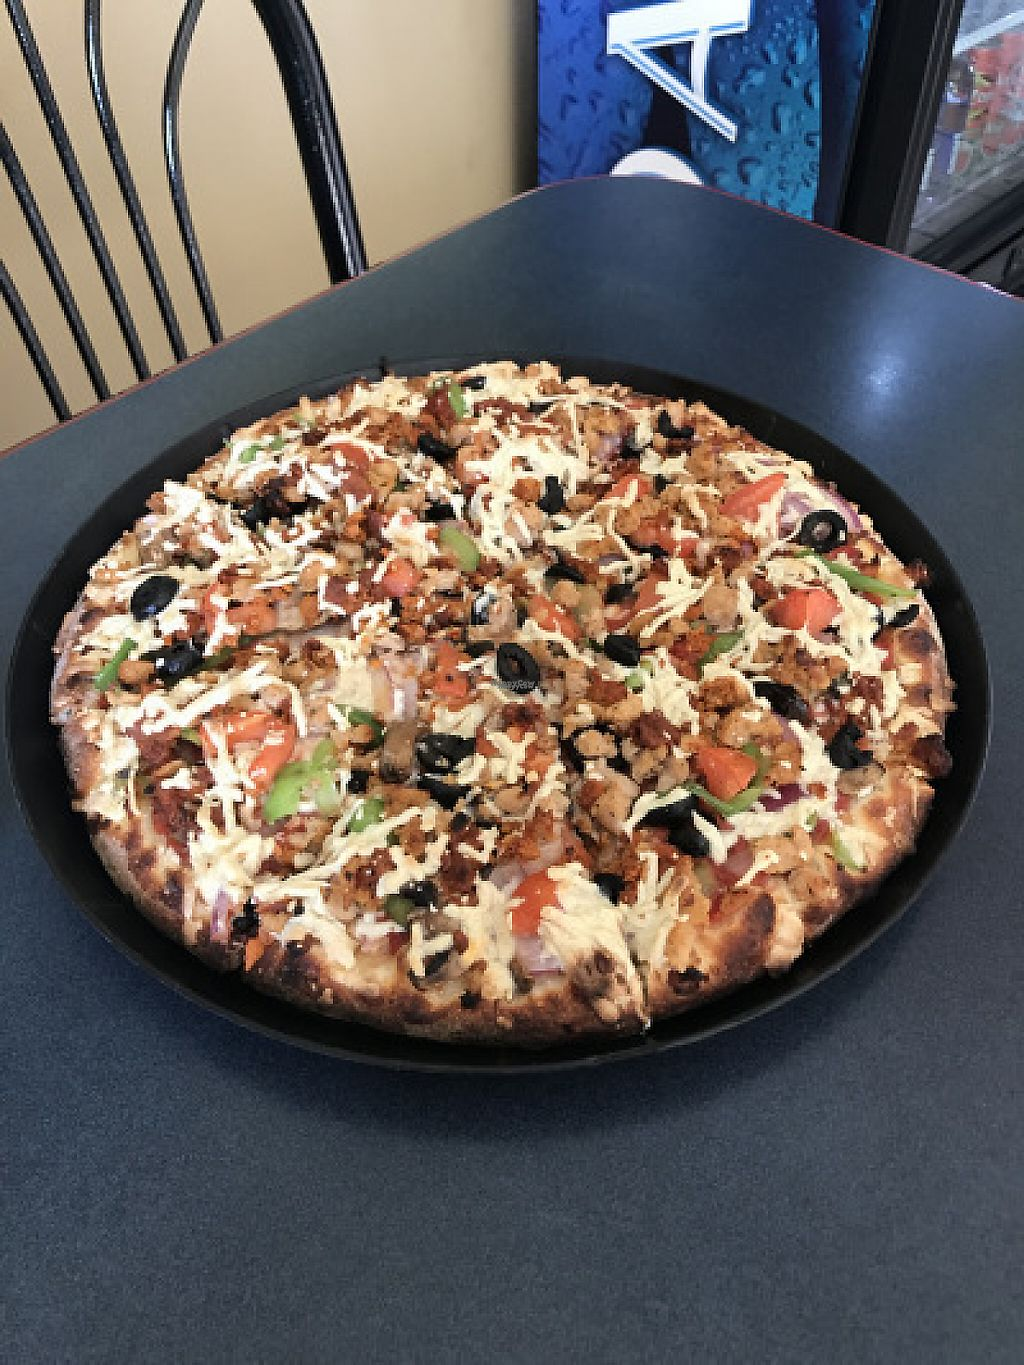 "Photo of Vegan Korner  by <a href=""/members/profile/yulie1022"">yulie1022</a> <br/>Vegan Supreme Pizza